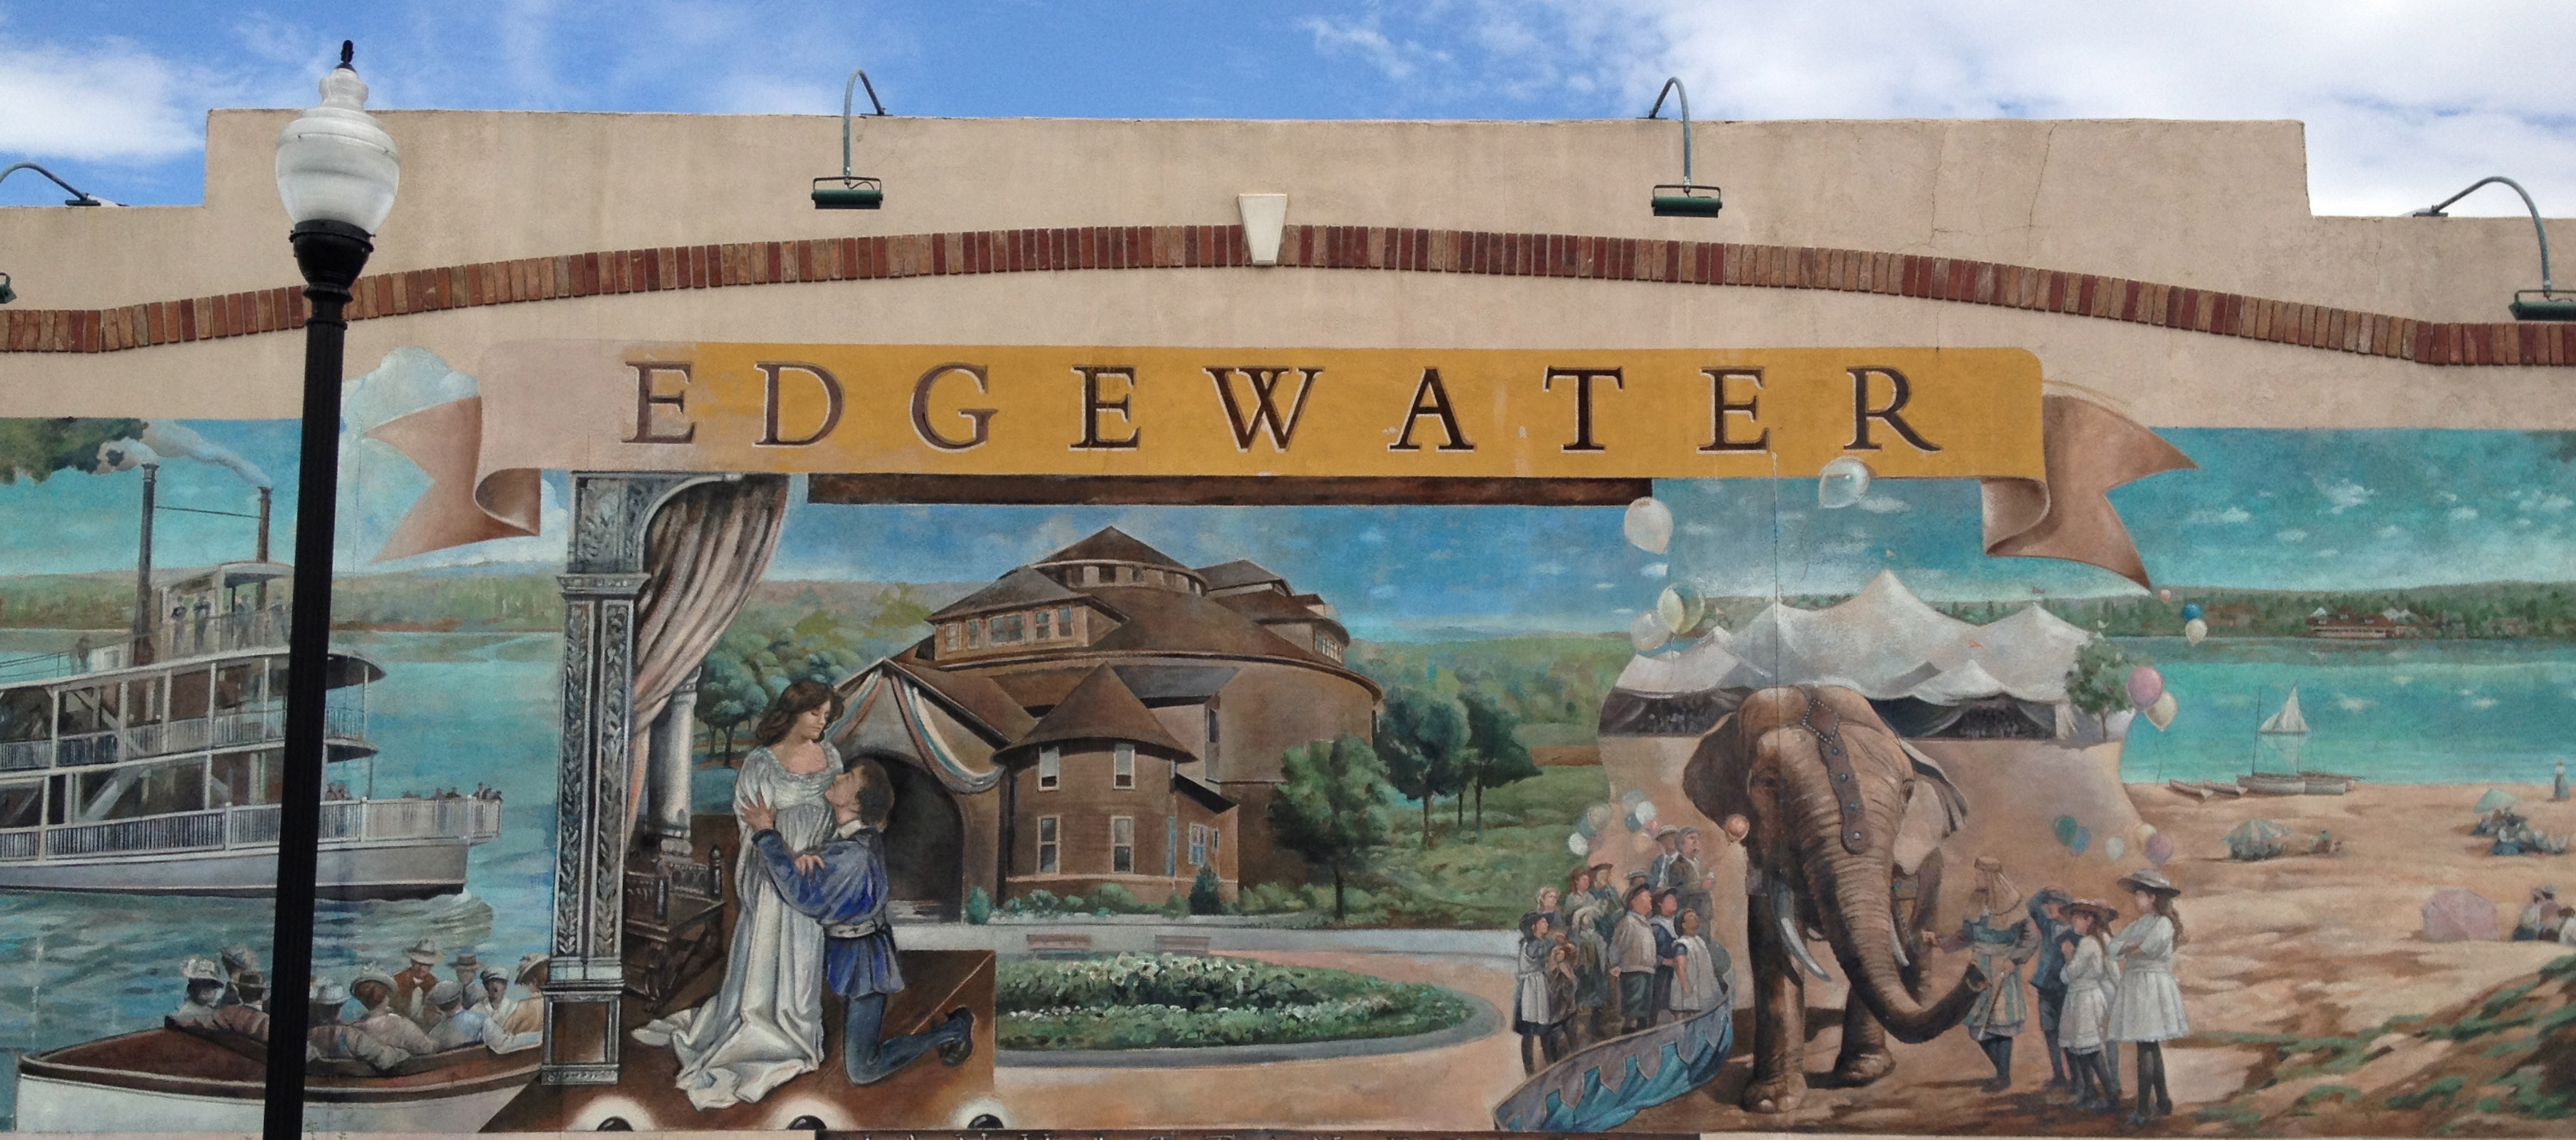 Help create a better edgewater edgewater collective for The edge water